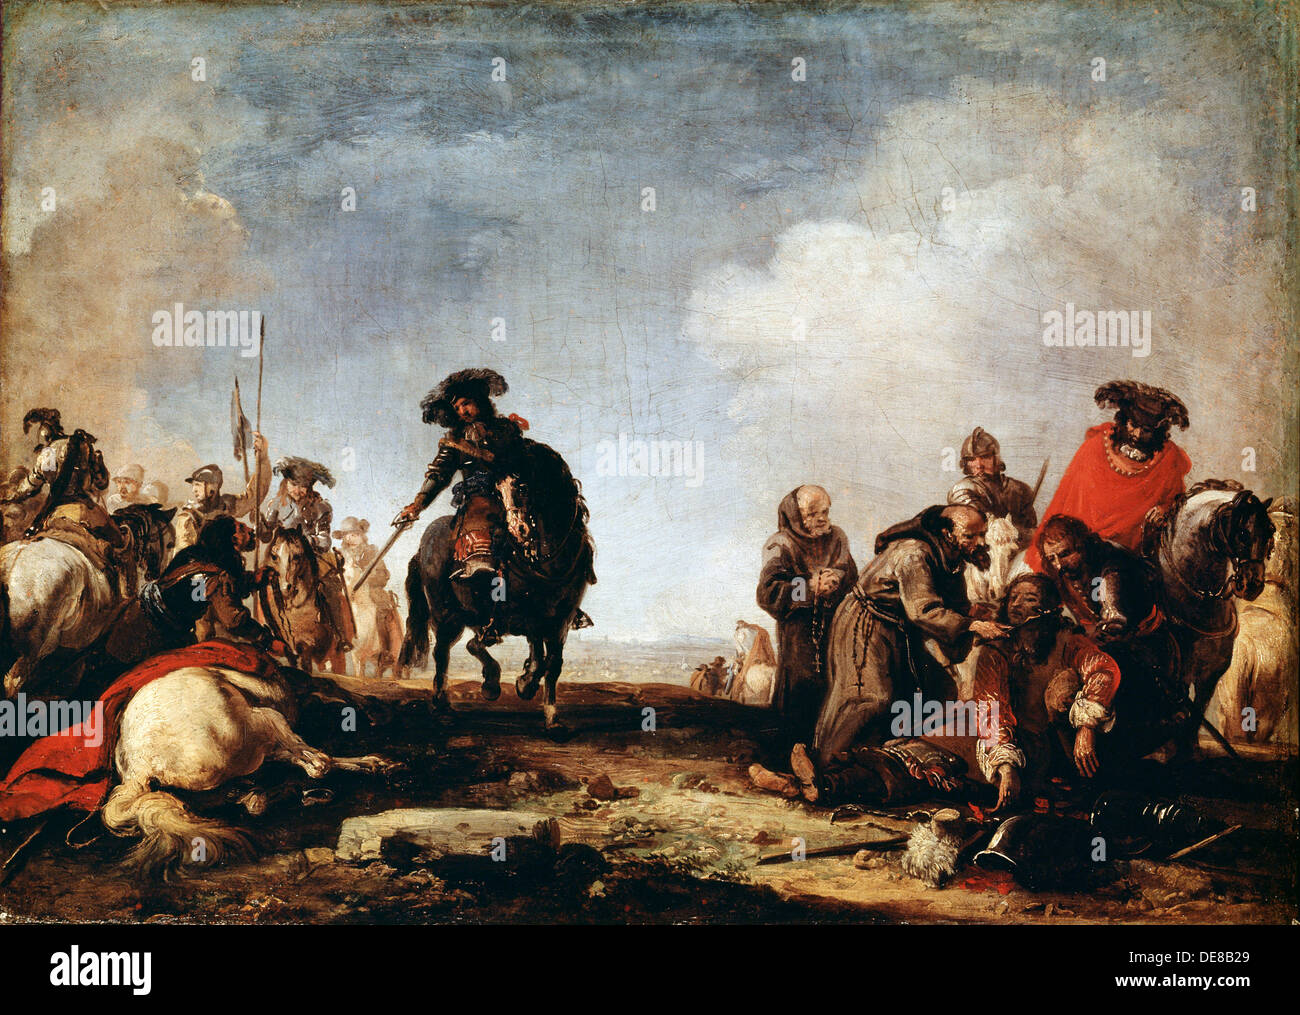 'After a Battle', 17th century.  Artist: Jacques Courtois - Stock Image